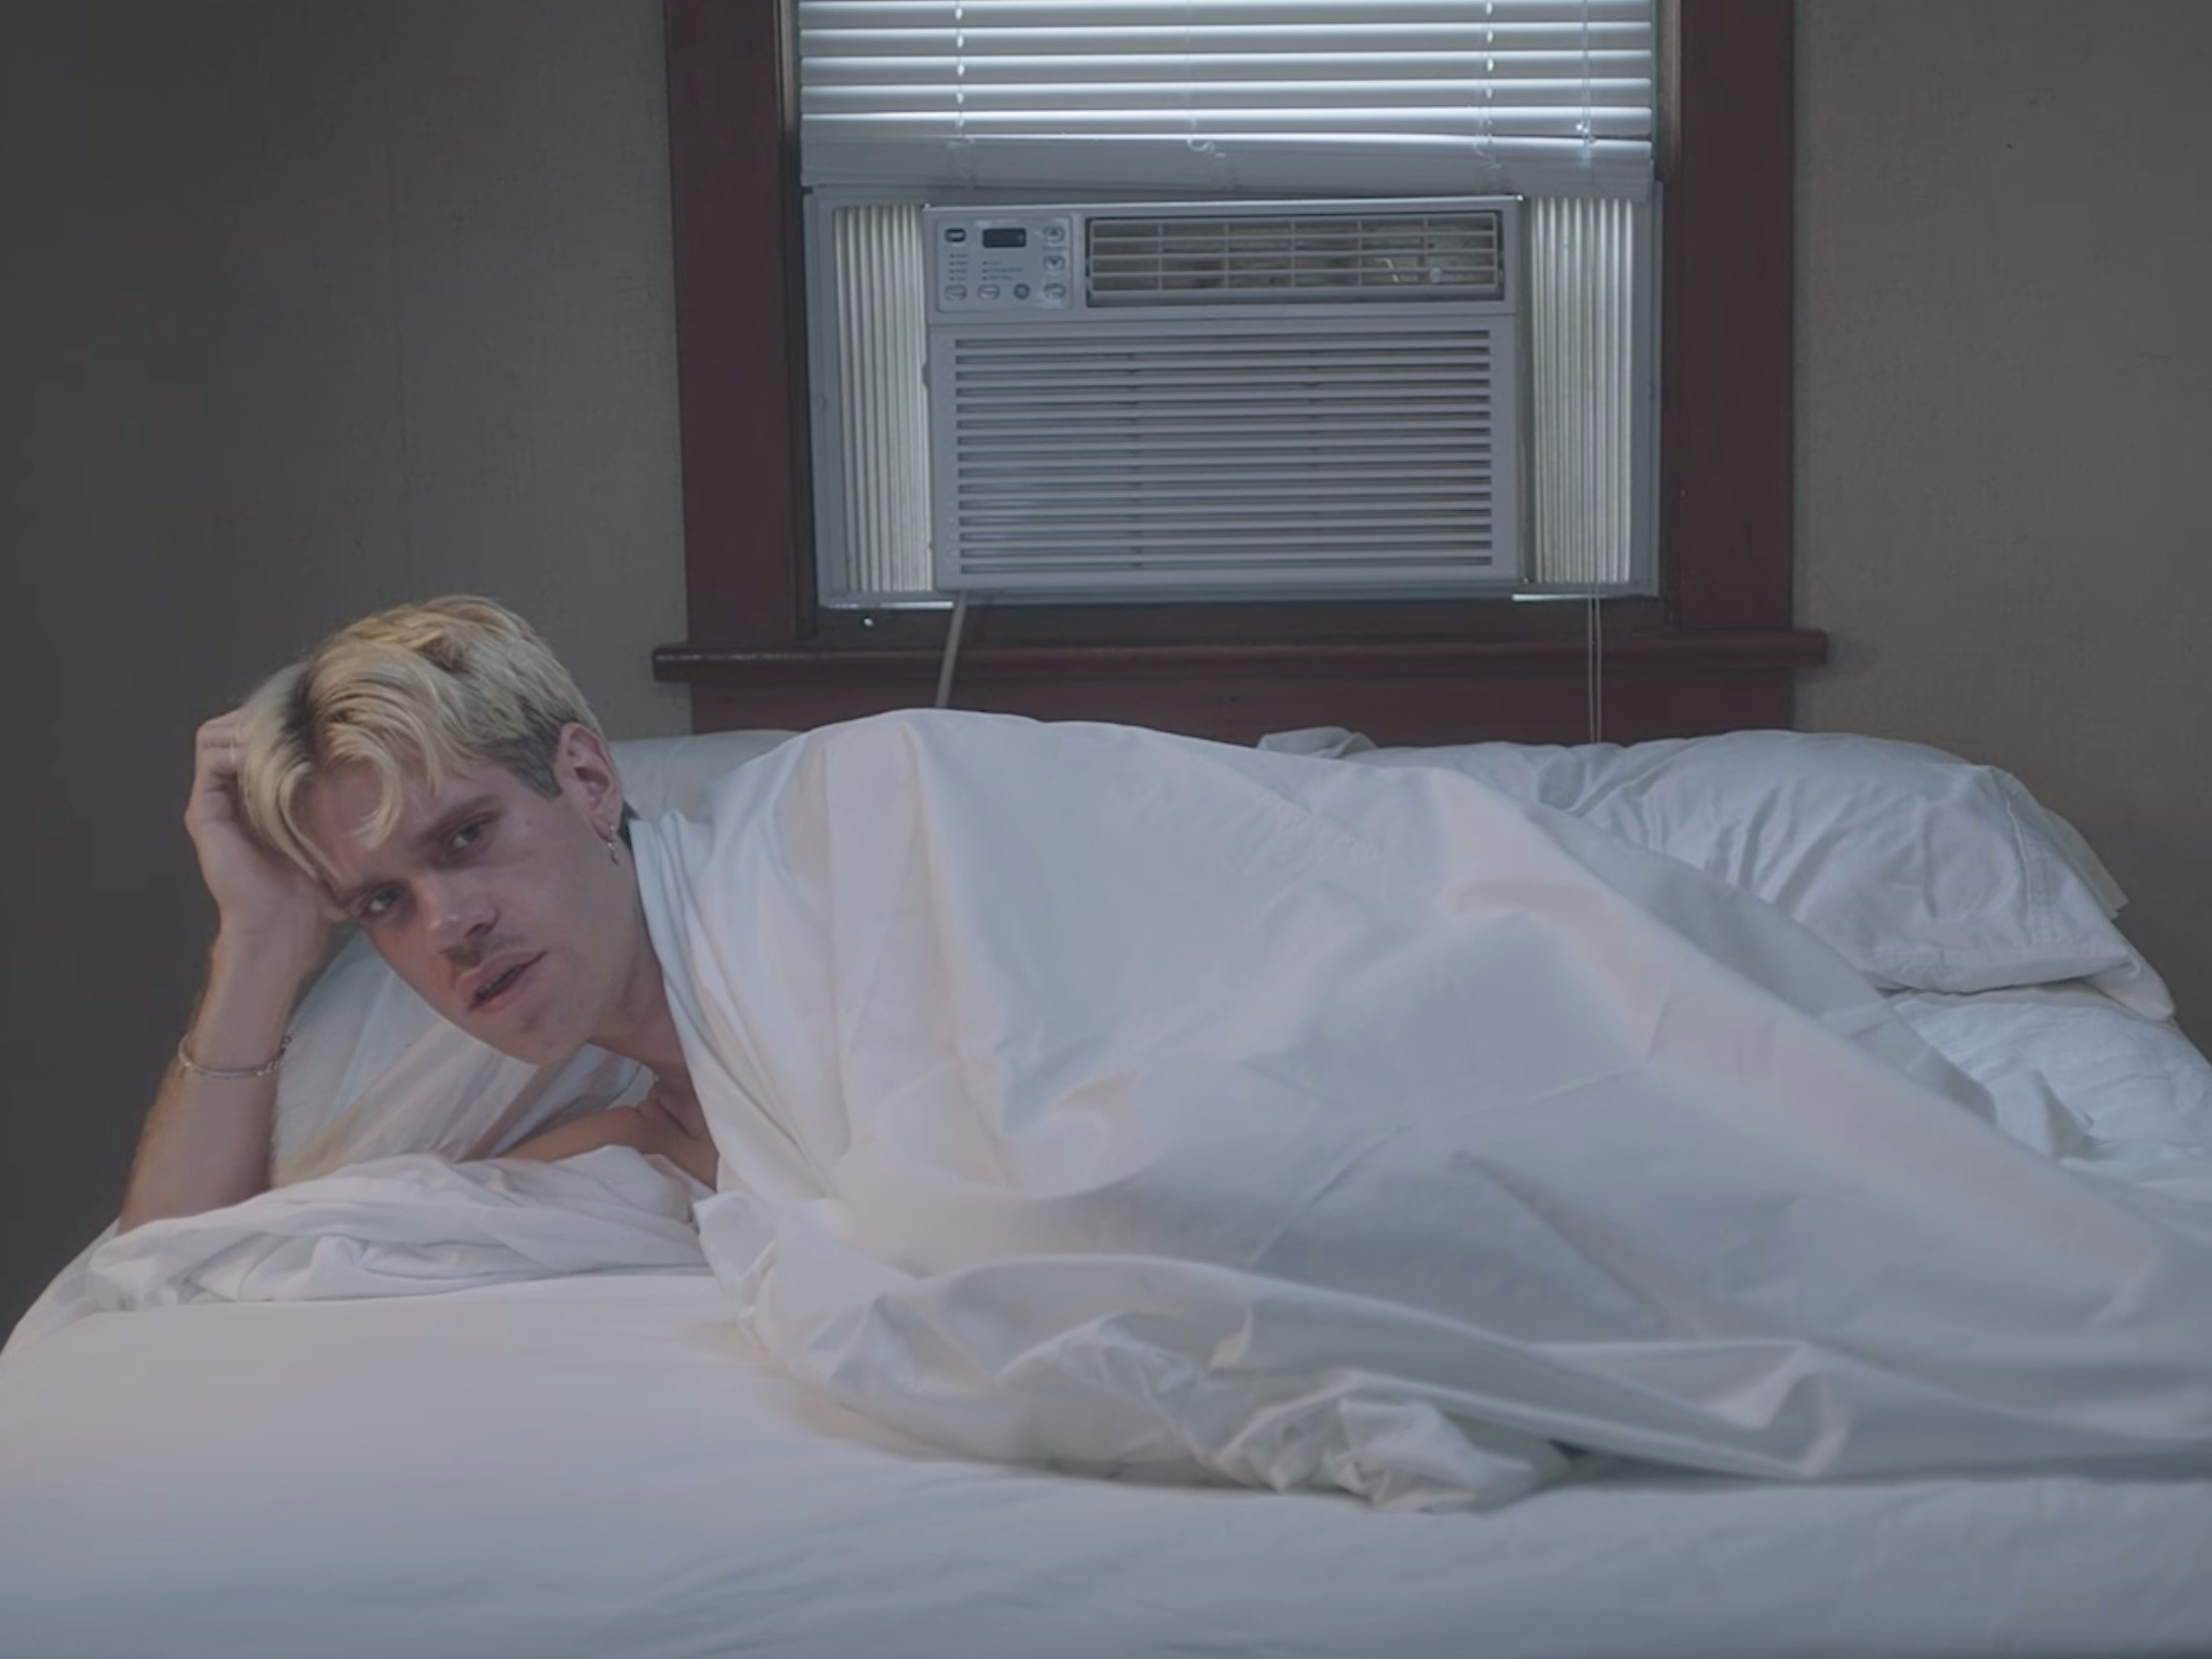 Porches' New Track Hints At Emotionally Powerful New Album